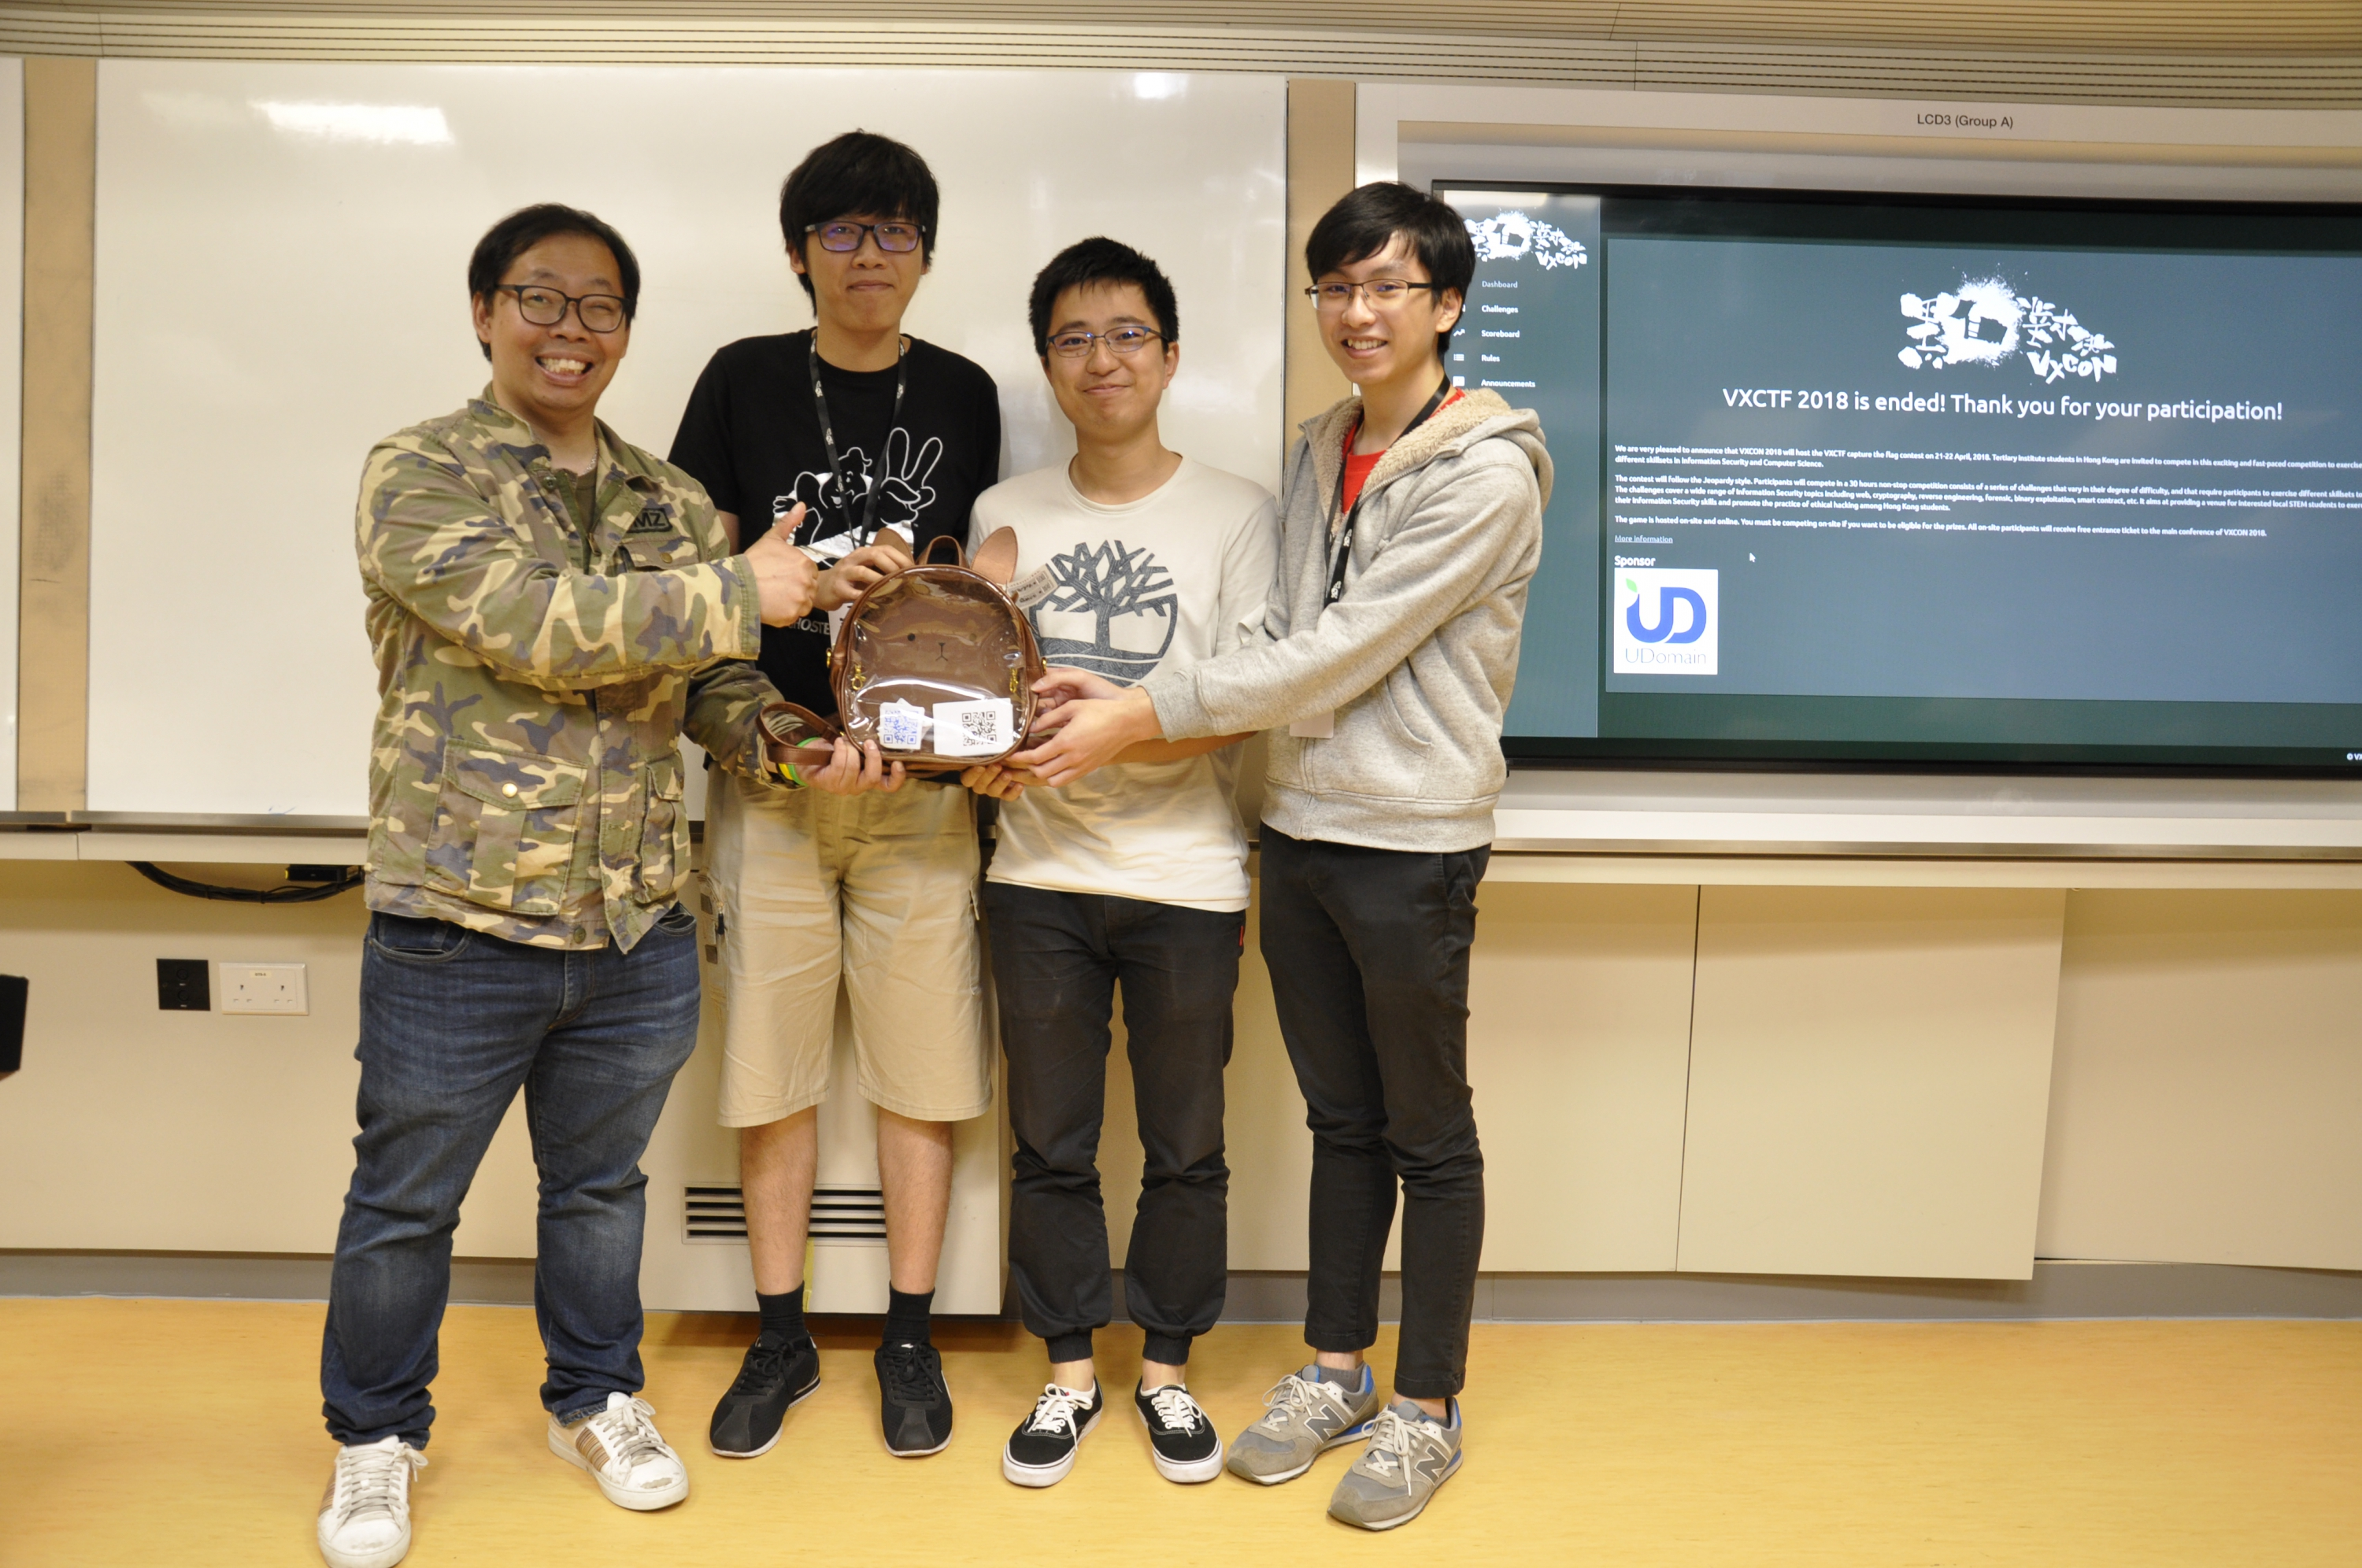 (From 2nd left) Cham Fei TONG from the Department of Computer Science and Engineering, Yihui ZENG from the Department of Mathematics, and Shing Yuet LEUNG from the Department of Information Engineering beat the other ten teams from four tertiary institutions to win the championship in the VXCTF 2018.